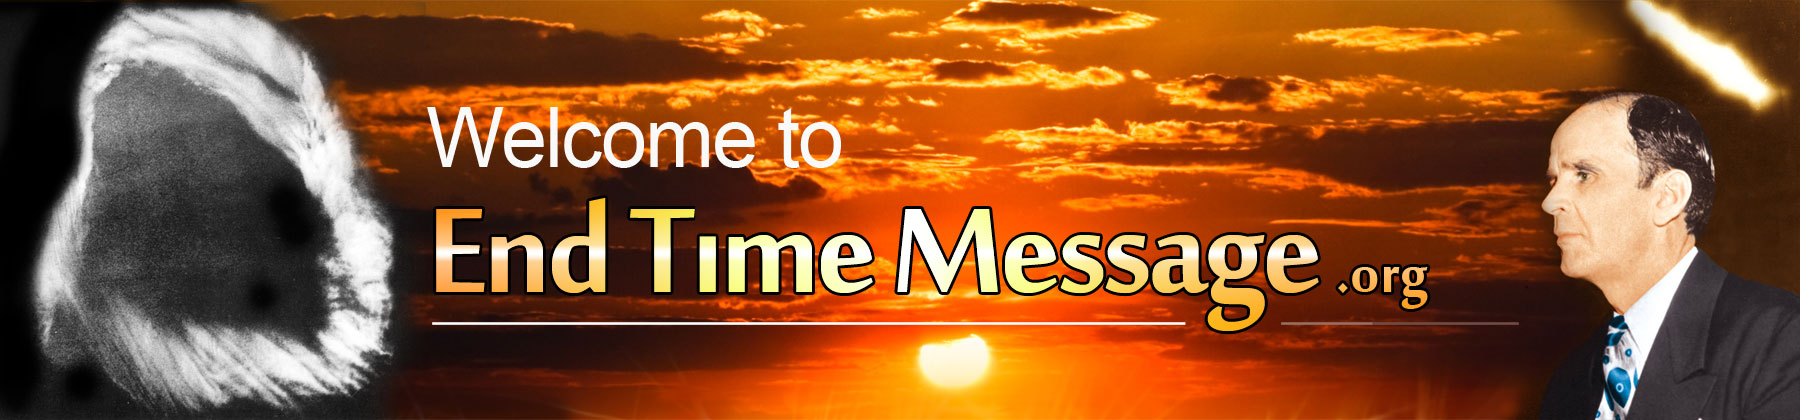 End Time Message